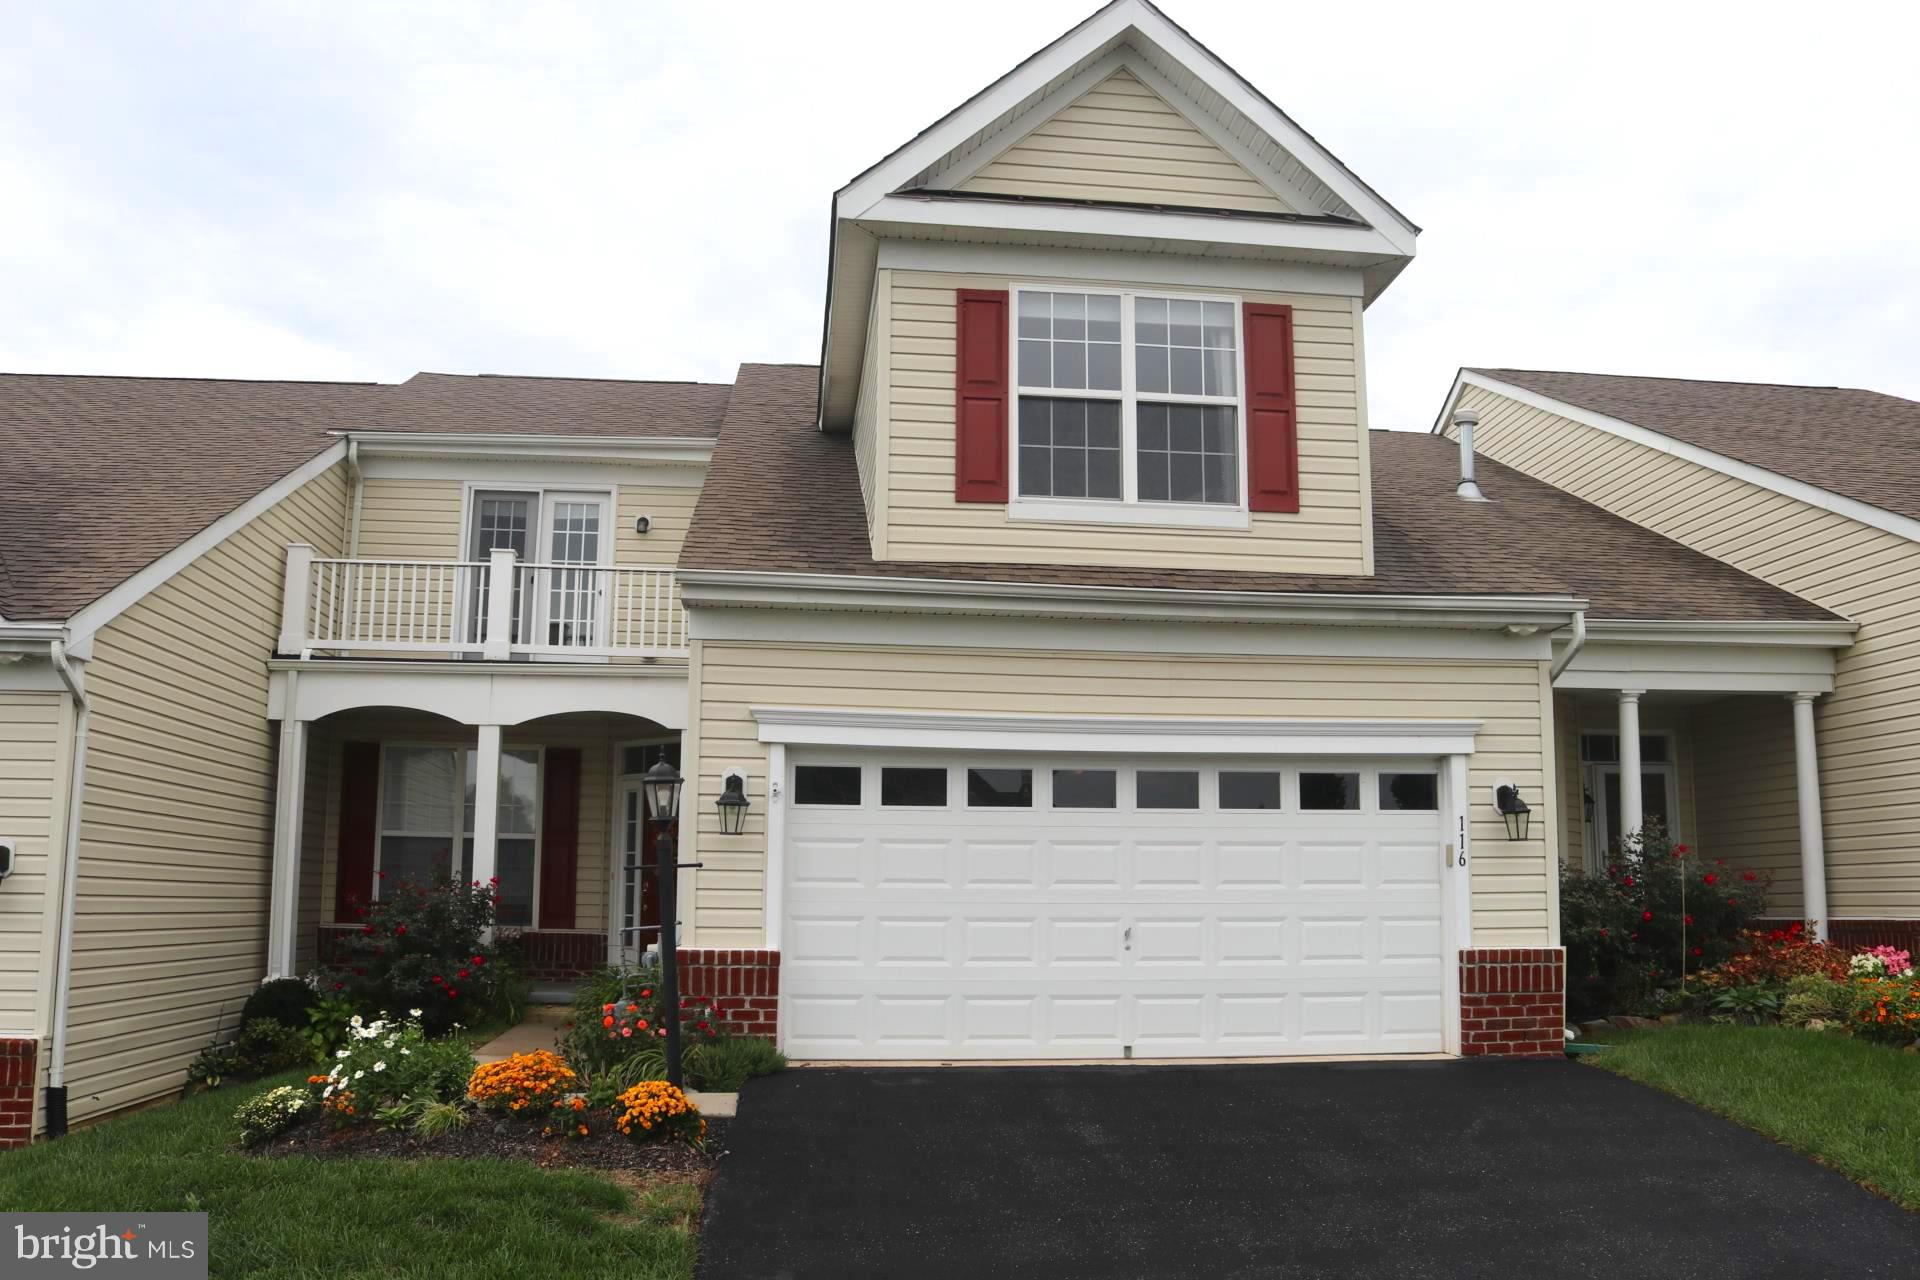 THIS IS A MUST SEE! FORMER MODEL HOME VILLA LOADED WITH UPGRADES! COME EXPERIENCE BULLE ROCK LIVING